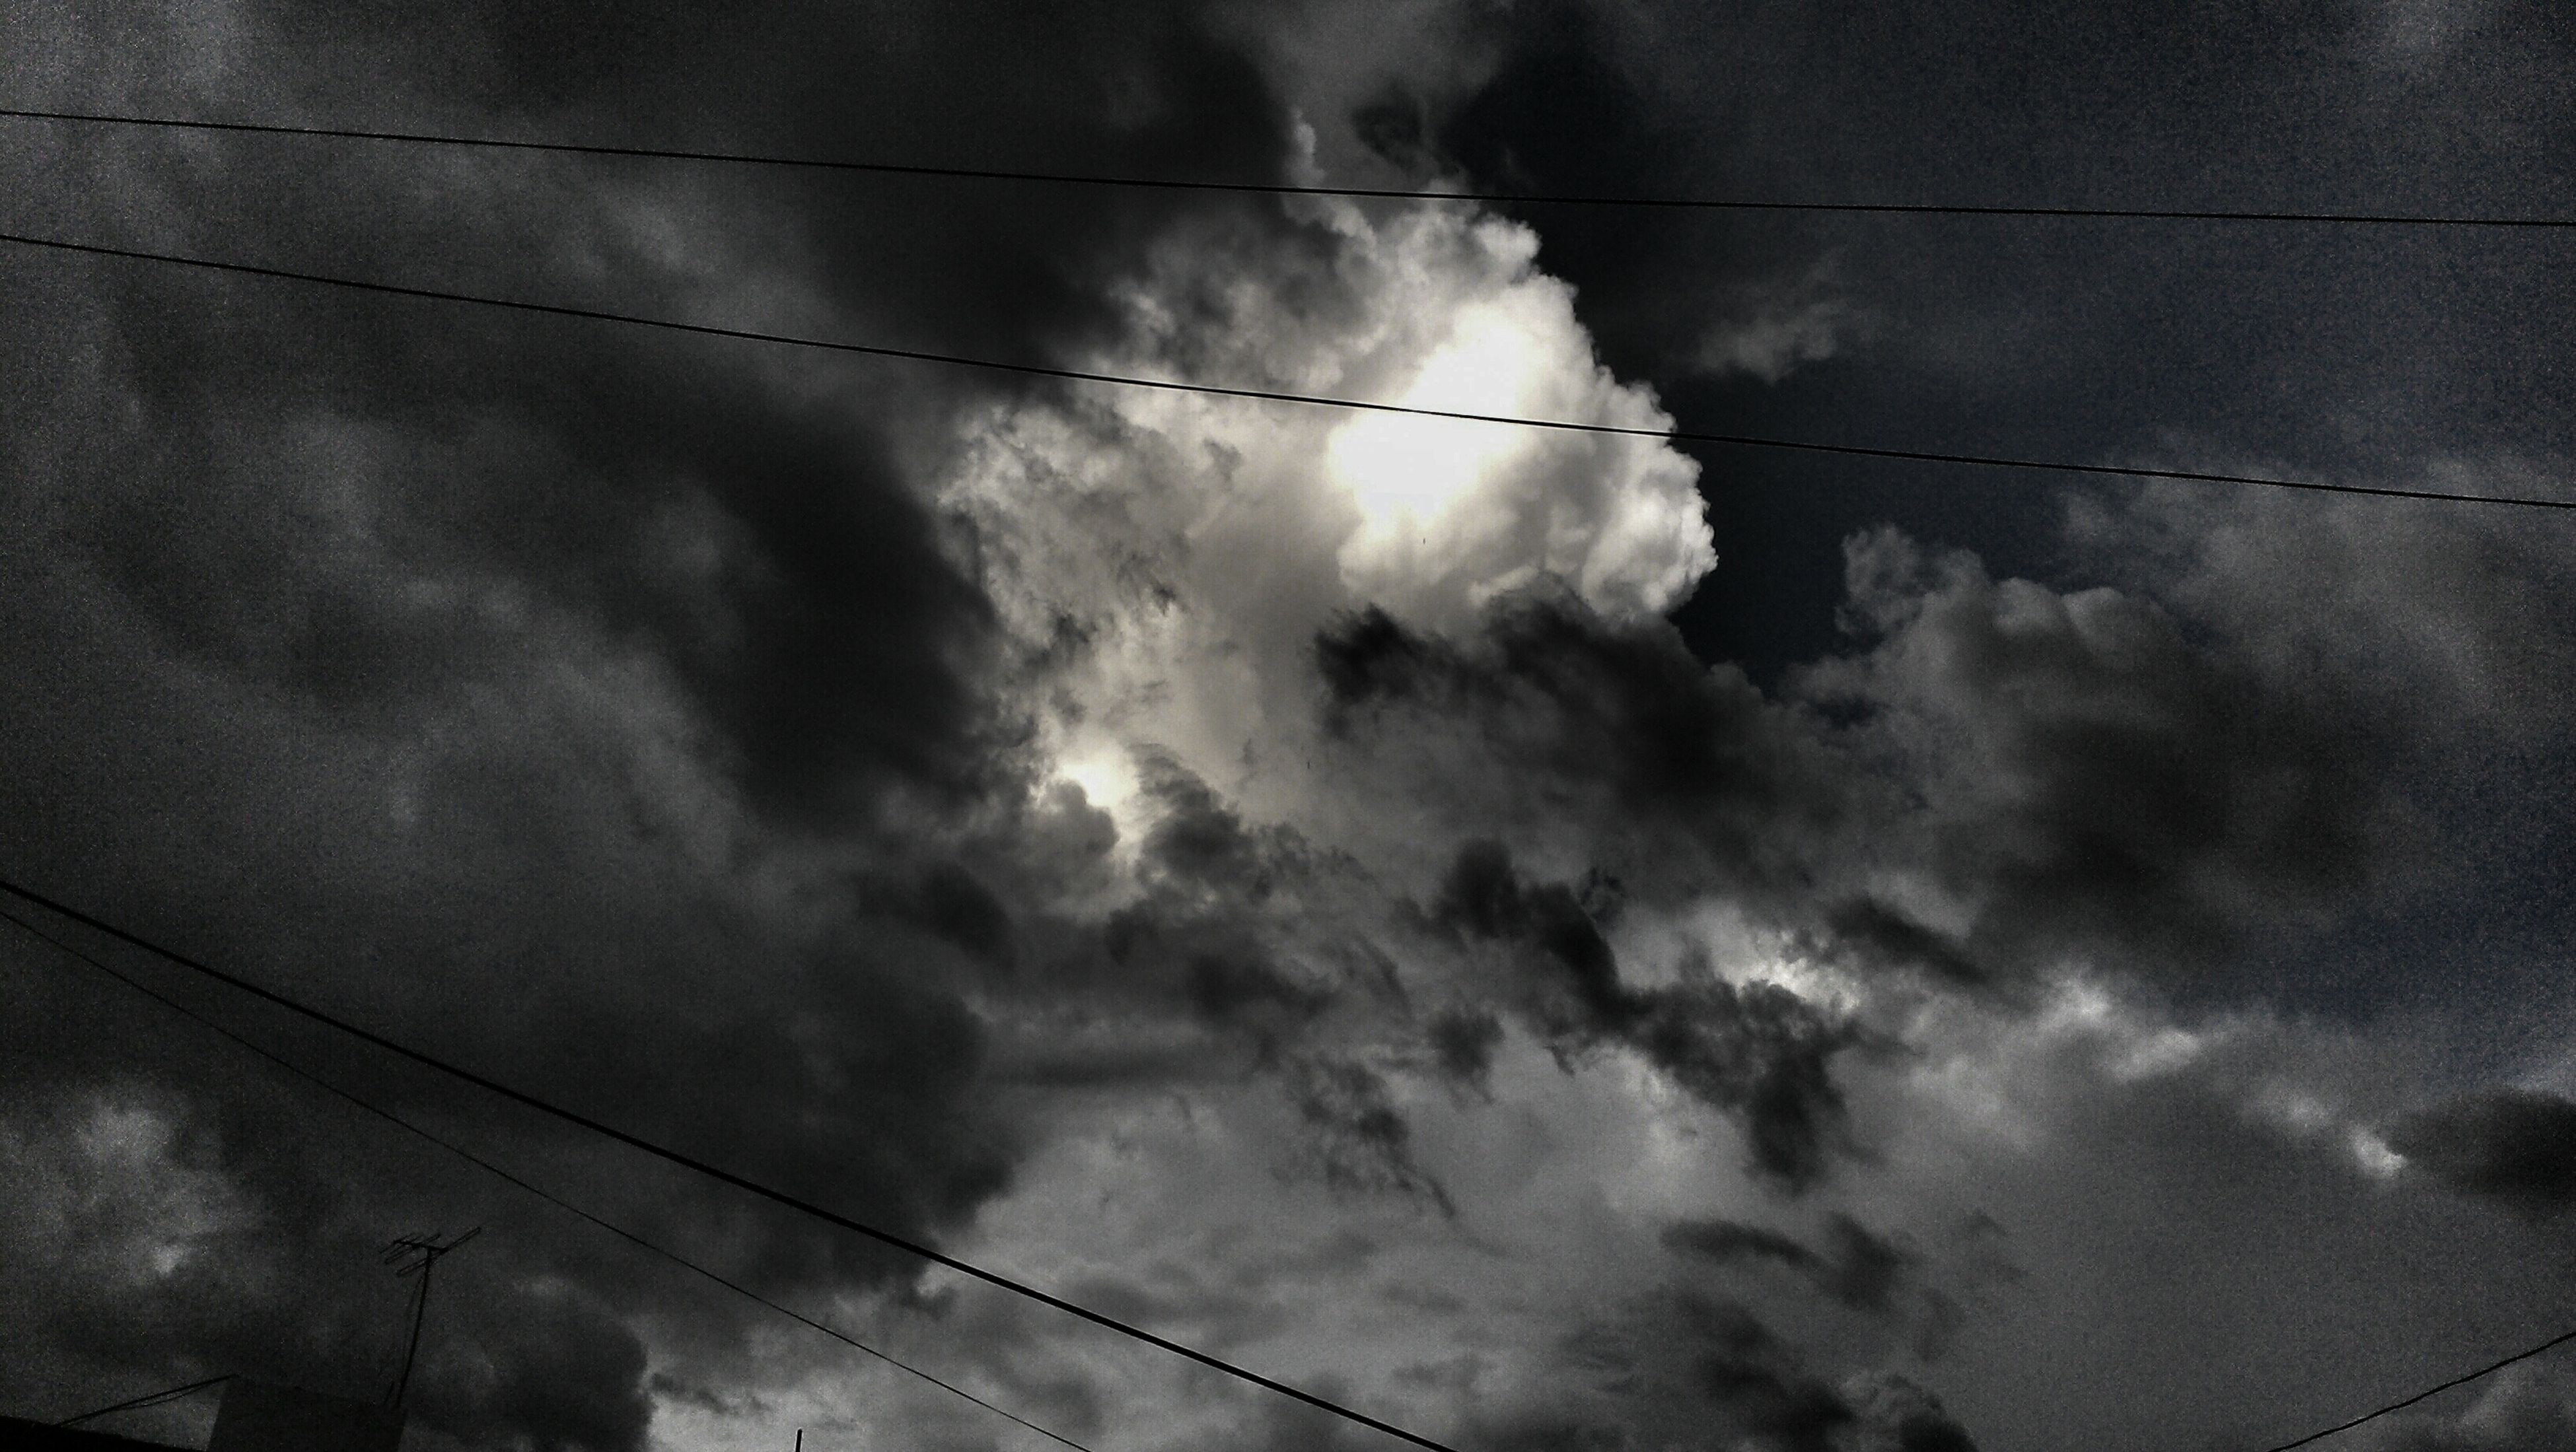 power line, sky, low angle view, cloud - sky, cable, cloudy, electricity, power supply, electricity pylon, cloud, connection, nature, weather, fuel and power generation, power cable, outdoors, overcast, no people, technology, tranquility